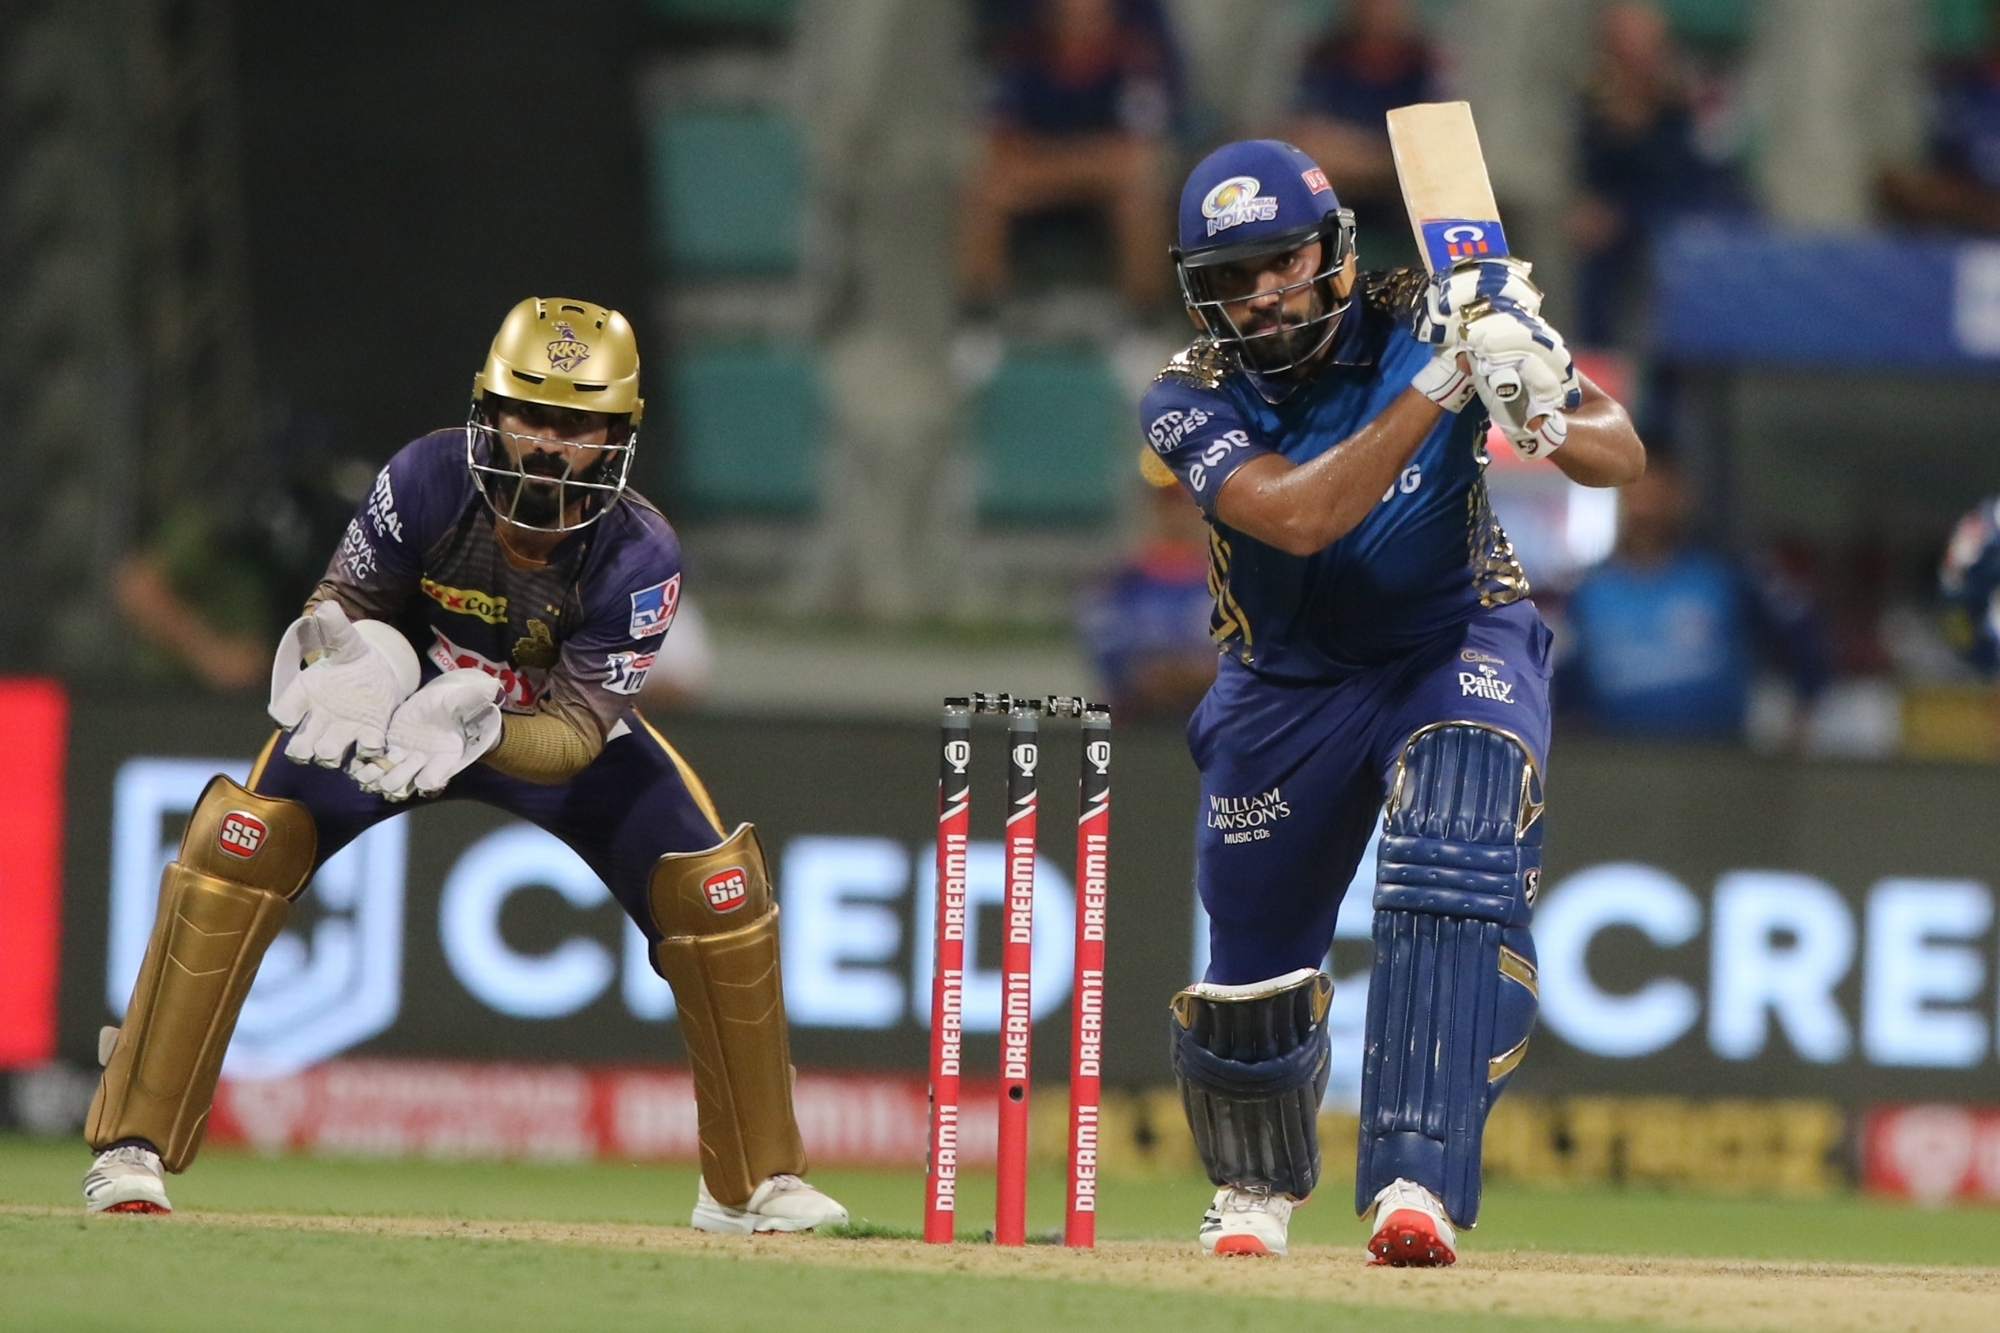 Rohit would like an encore of his performance against KKR in the return match | BCCI/IPL